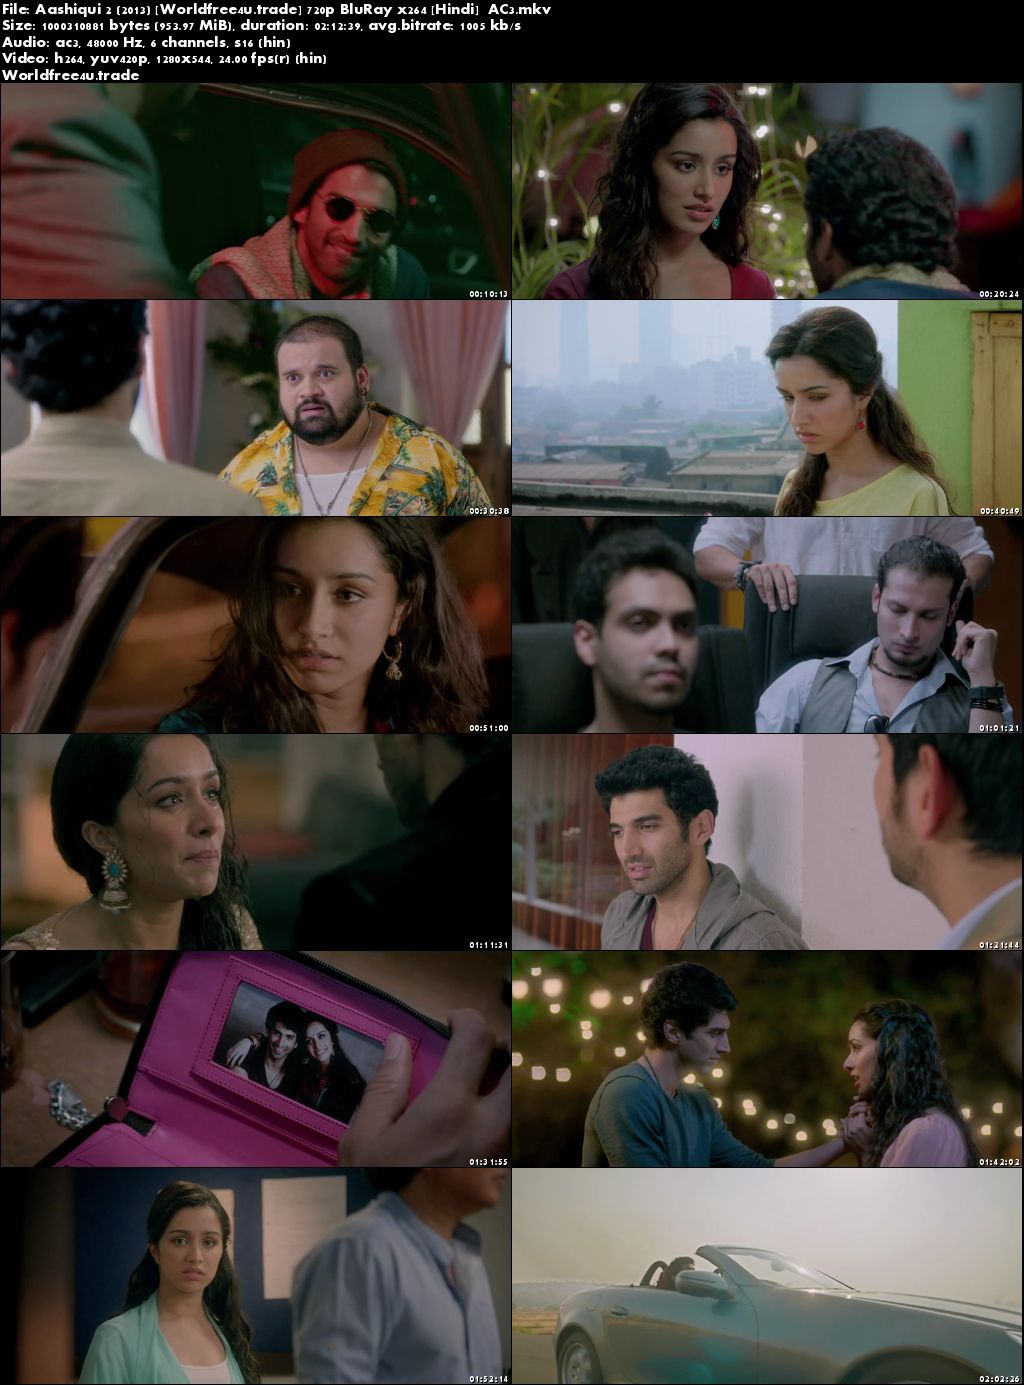 Screen shots Aashiqui 2 (2011) Full HD Movie Download Blue-ray 1080p